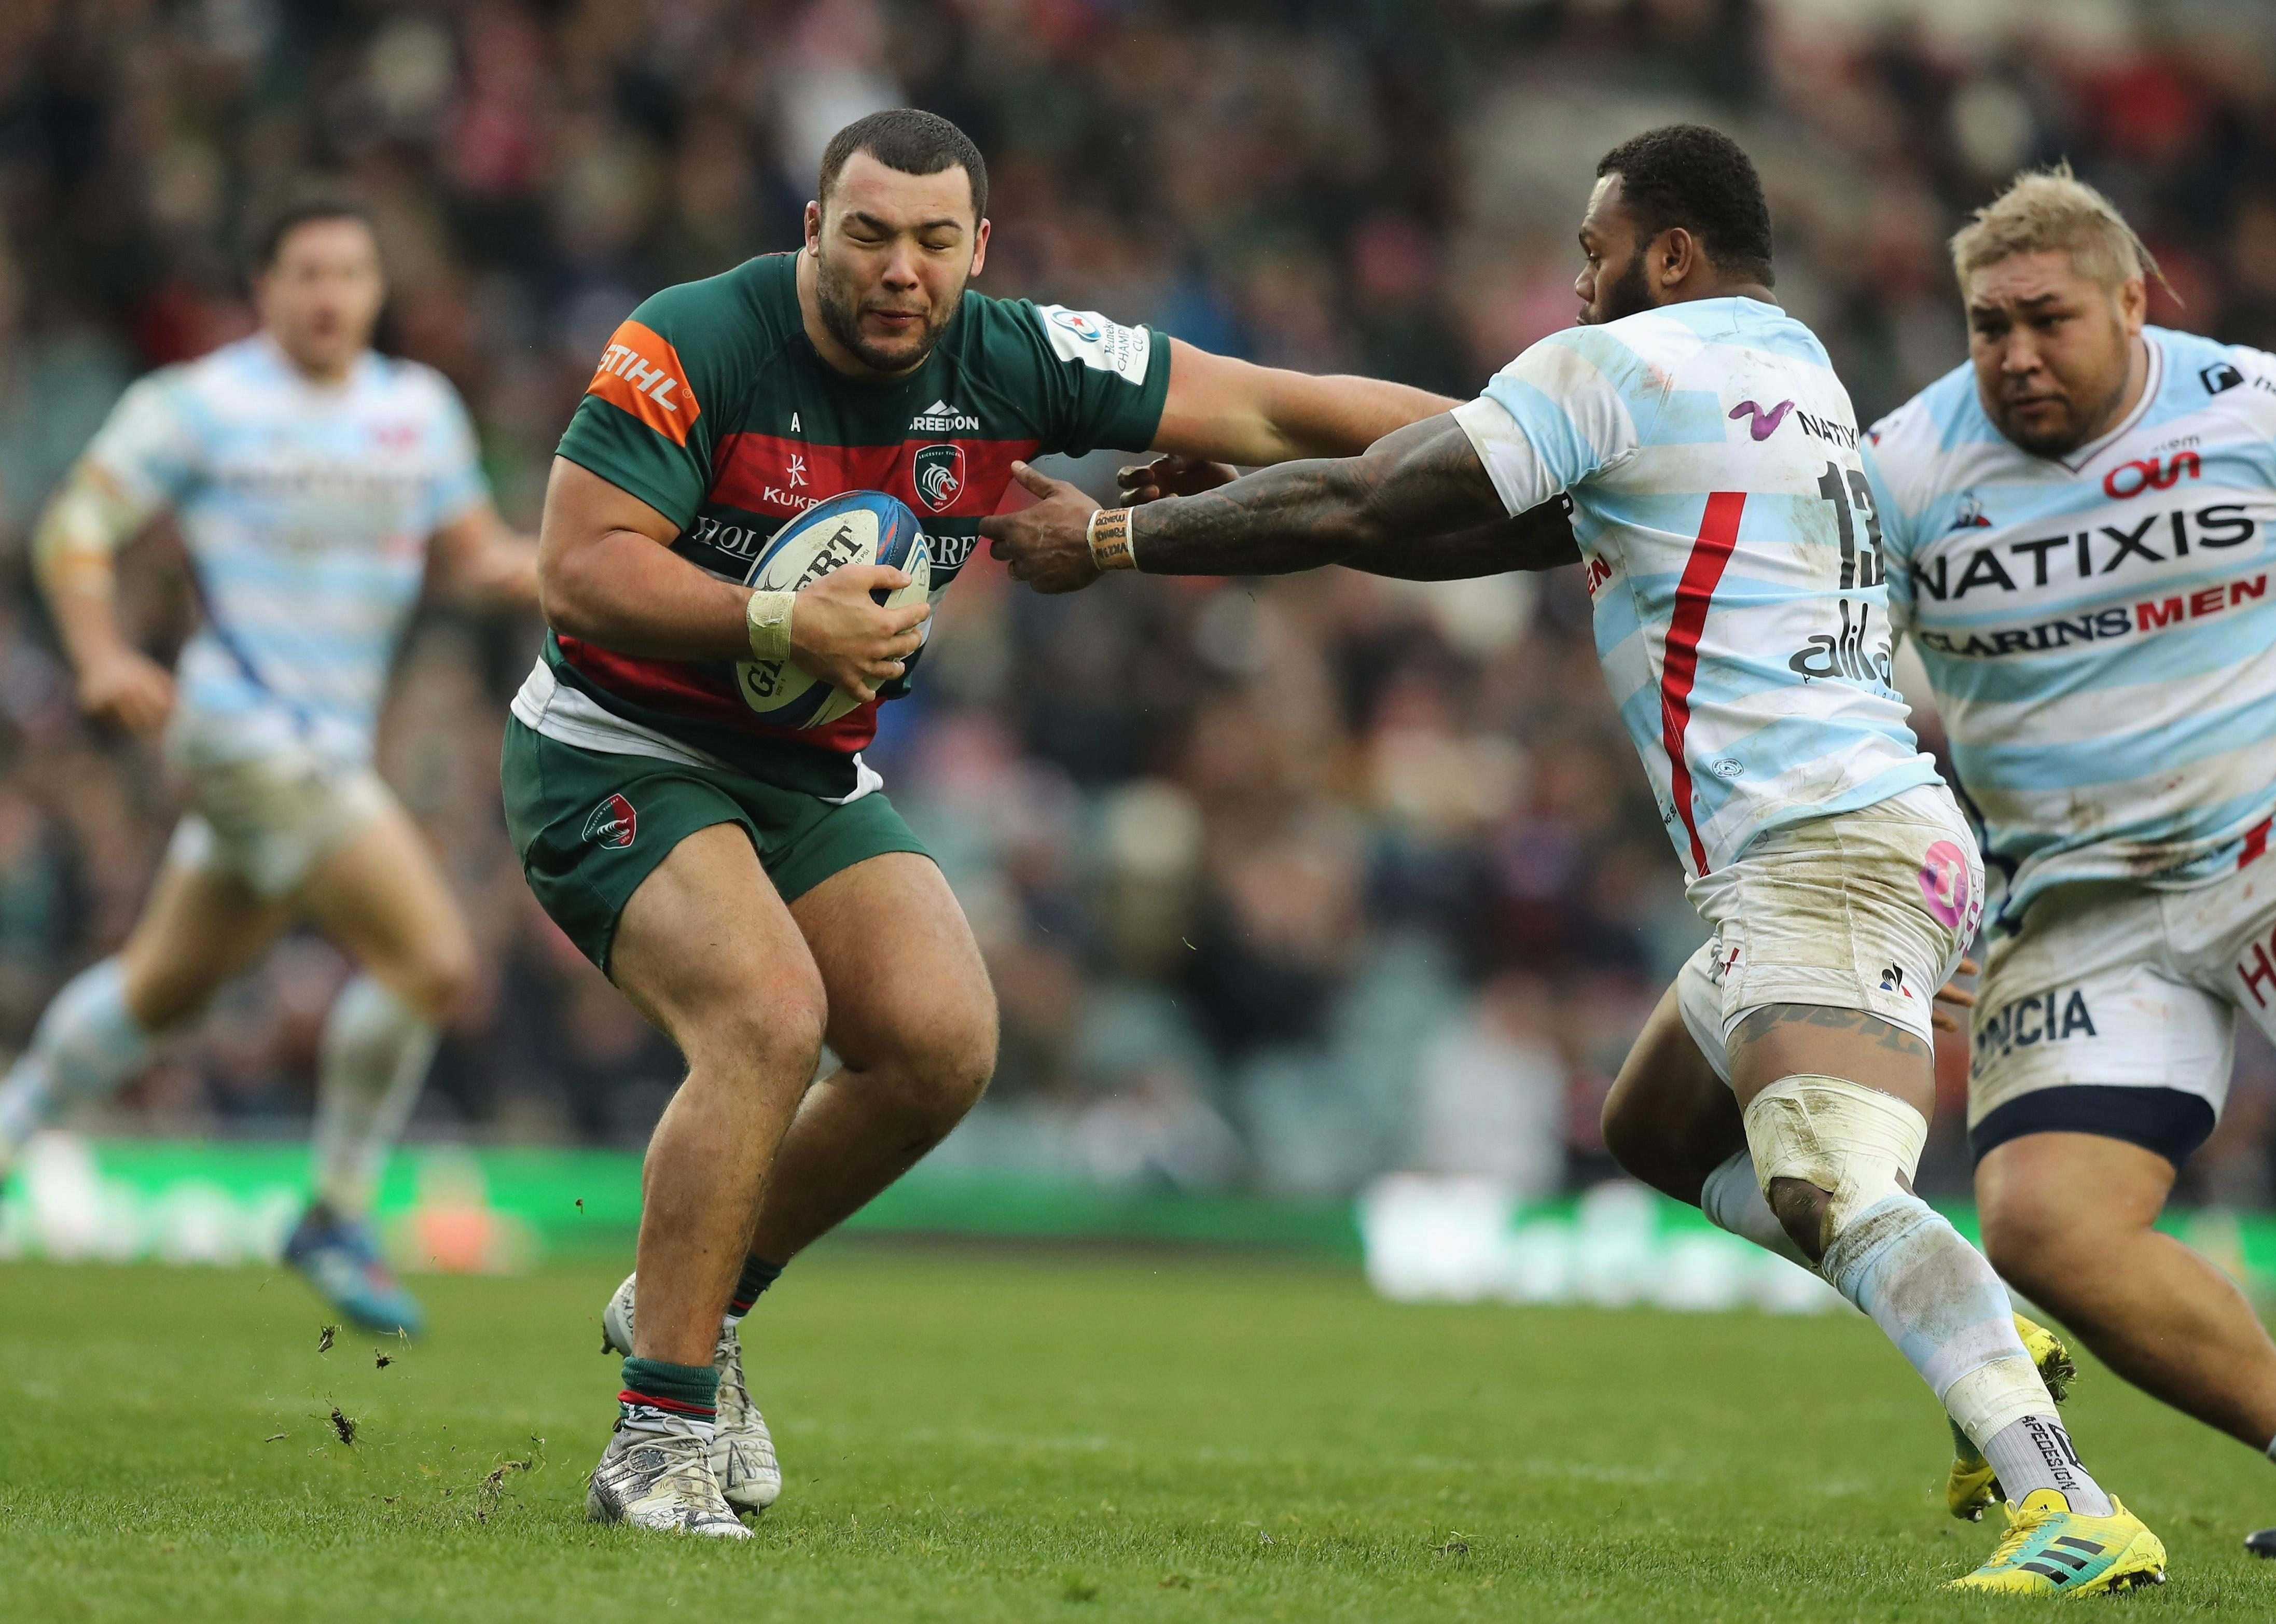 Ellis Genge in action for Leicester Tigers against Racing 92 of France